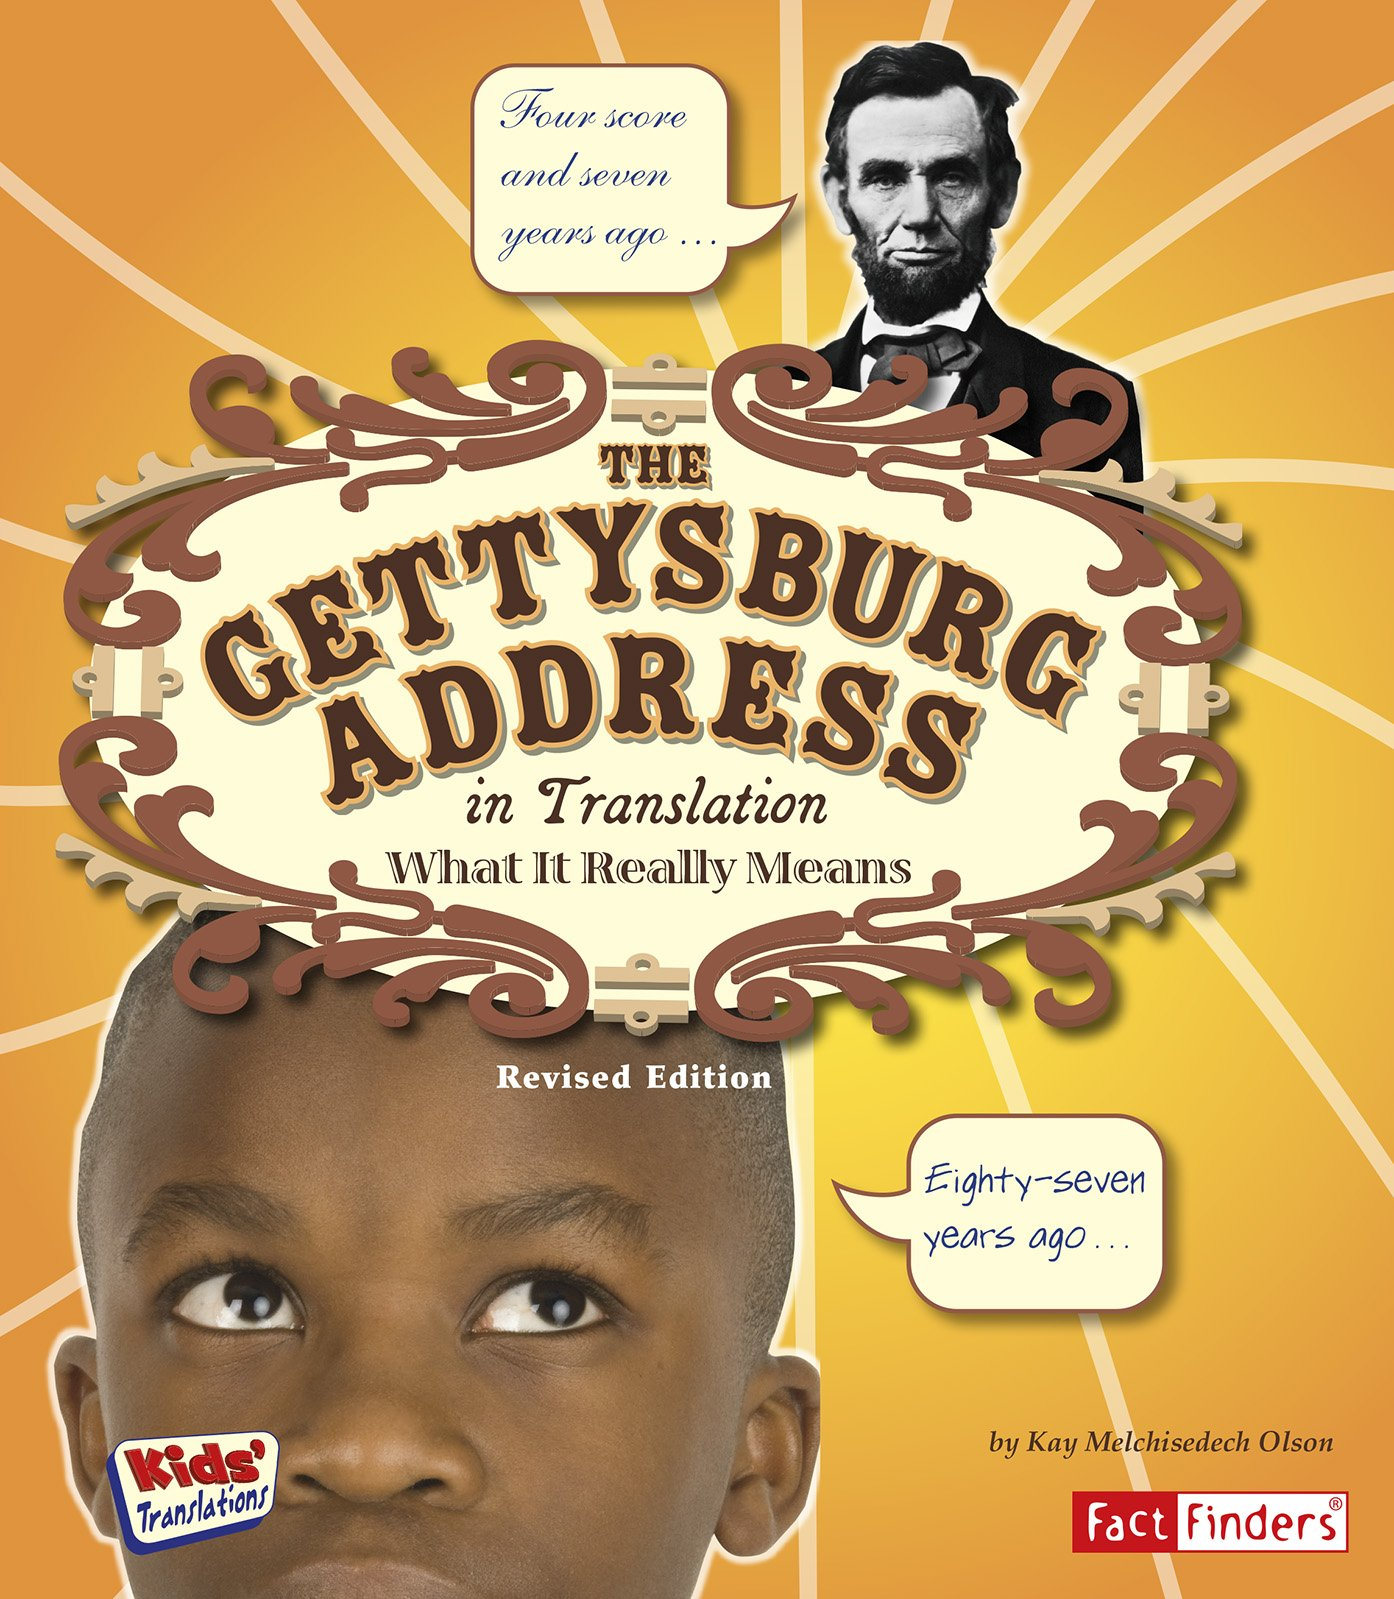 The Gettysburg Address in Translation: What It Really Means (Kids' Translations) ebook